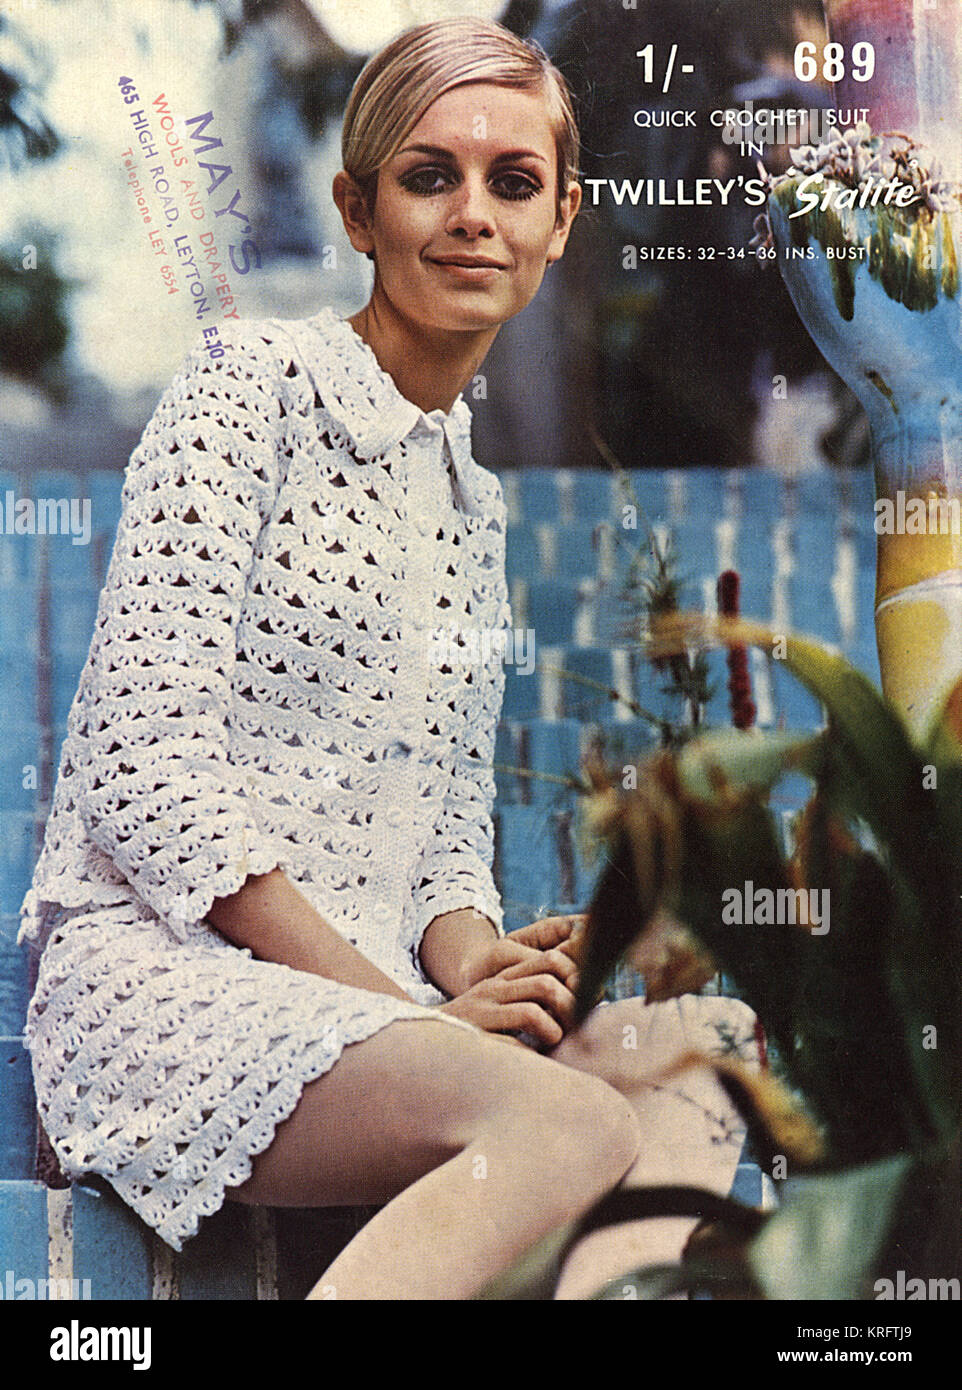 Front cover of a crochet pattern for a 'quick crochet suit' in Twilley's Stalite wool, worn here by - Stock Image